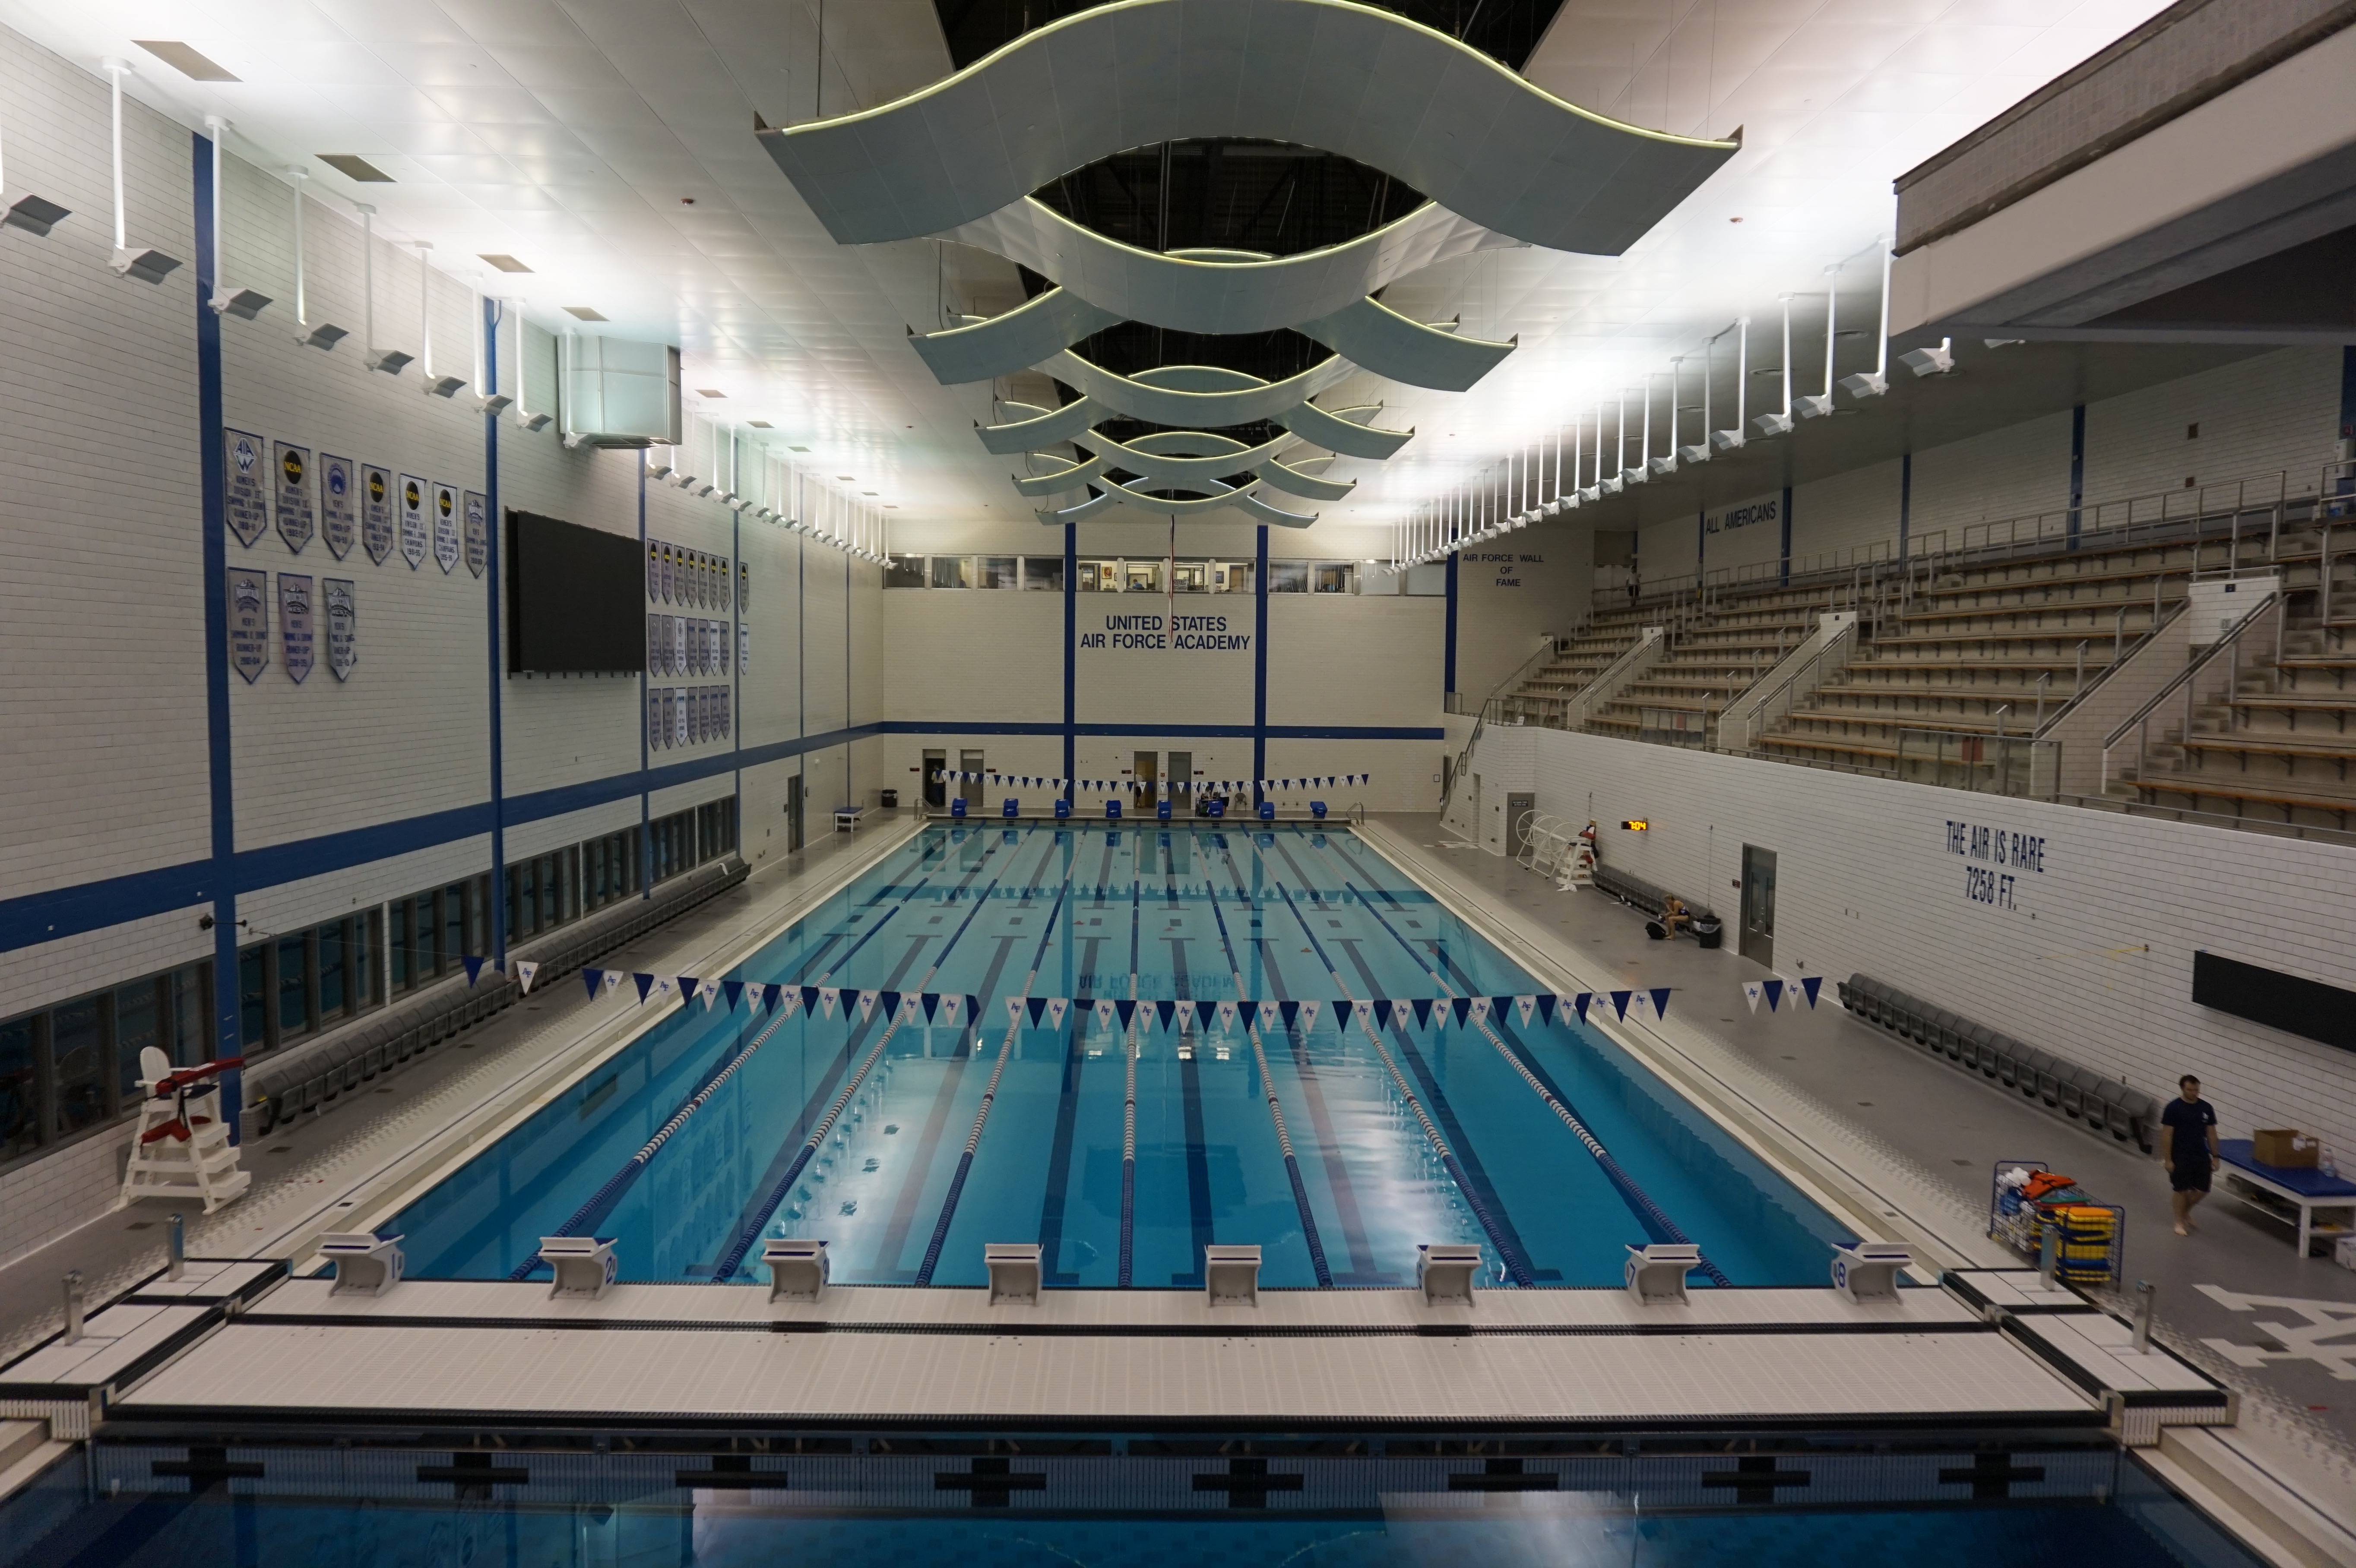 U S Air Force Academy Facilities Collegeswimming